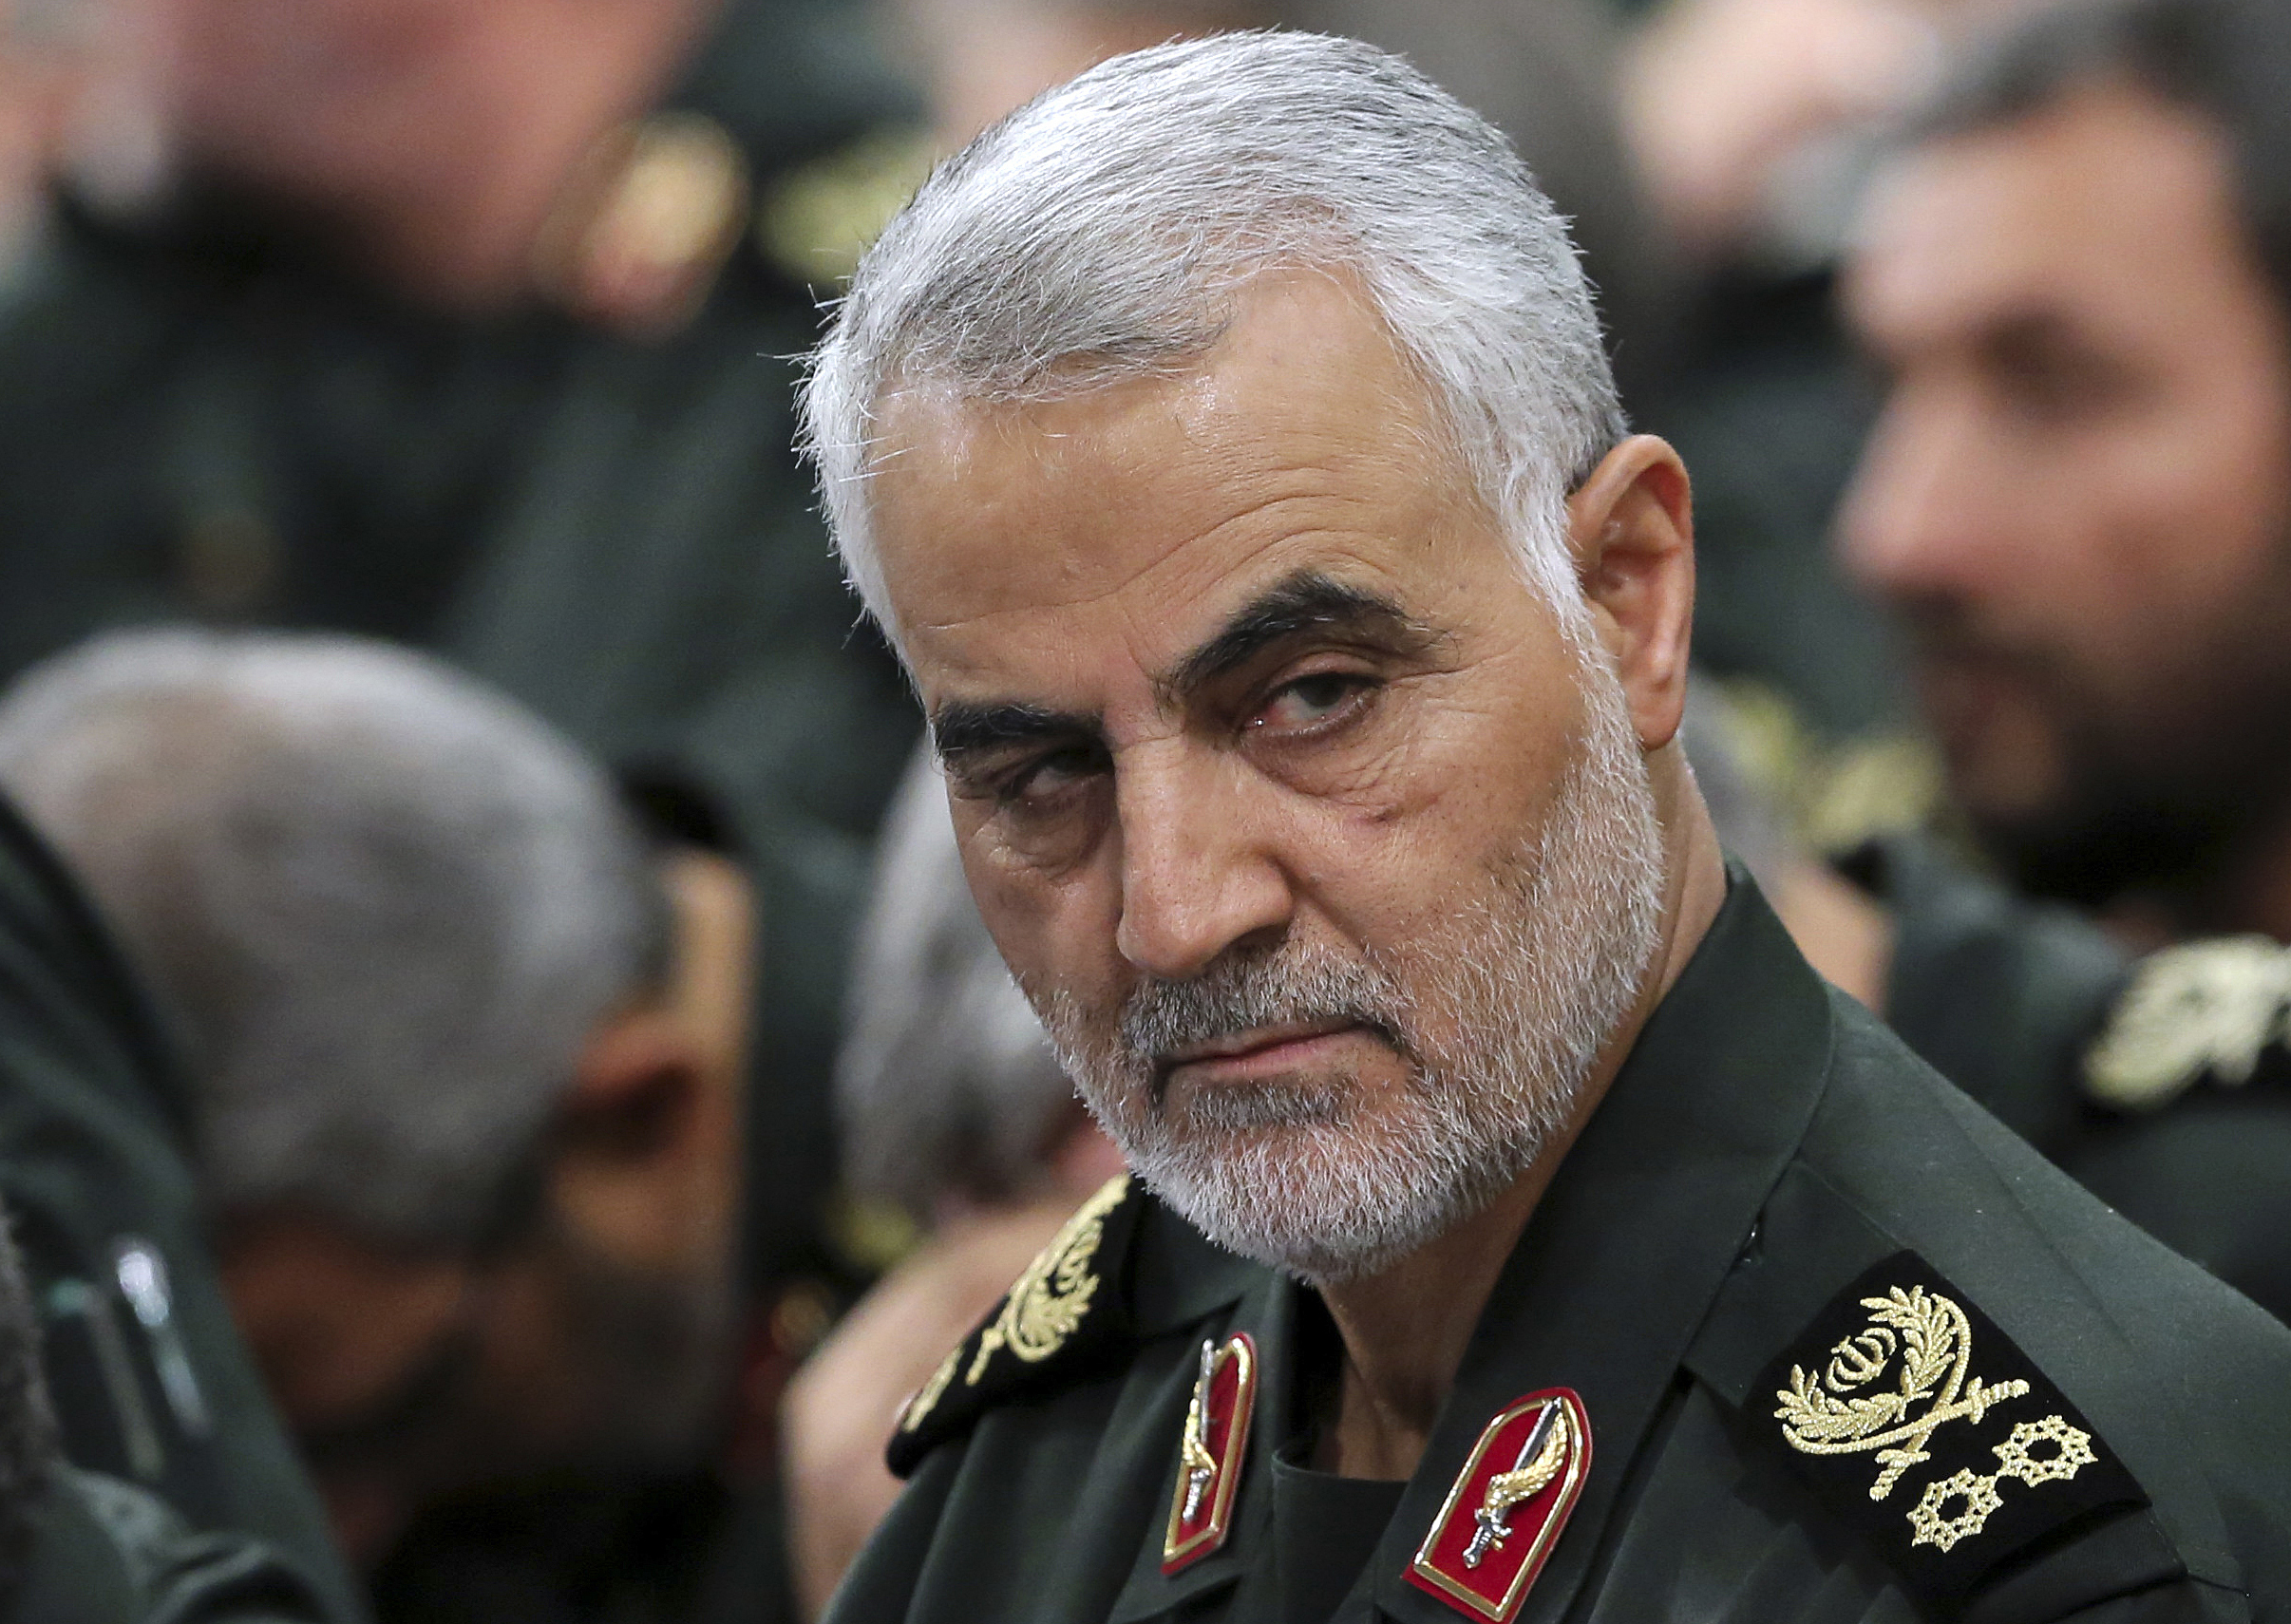 Iranian Revolutionary Guard Gen. Qassem Soleimani, who was killed by a U.S. airstrike near Baghdad's airport on Jan. 3, 2020.